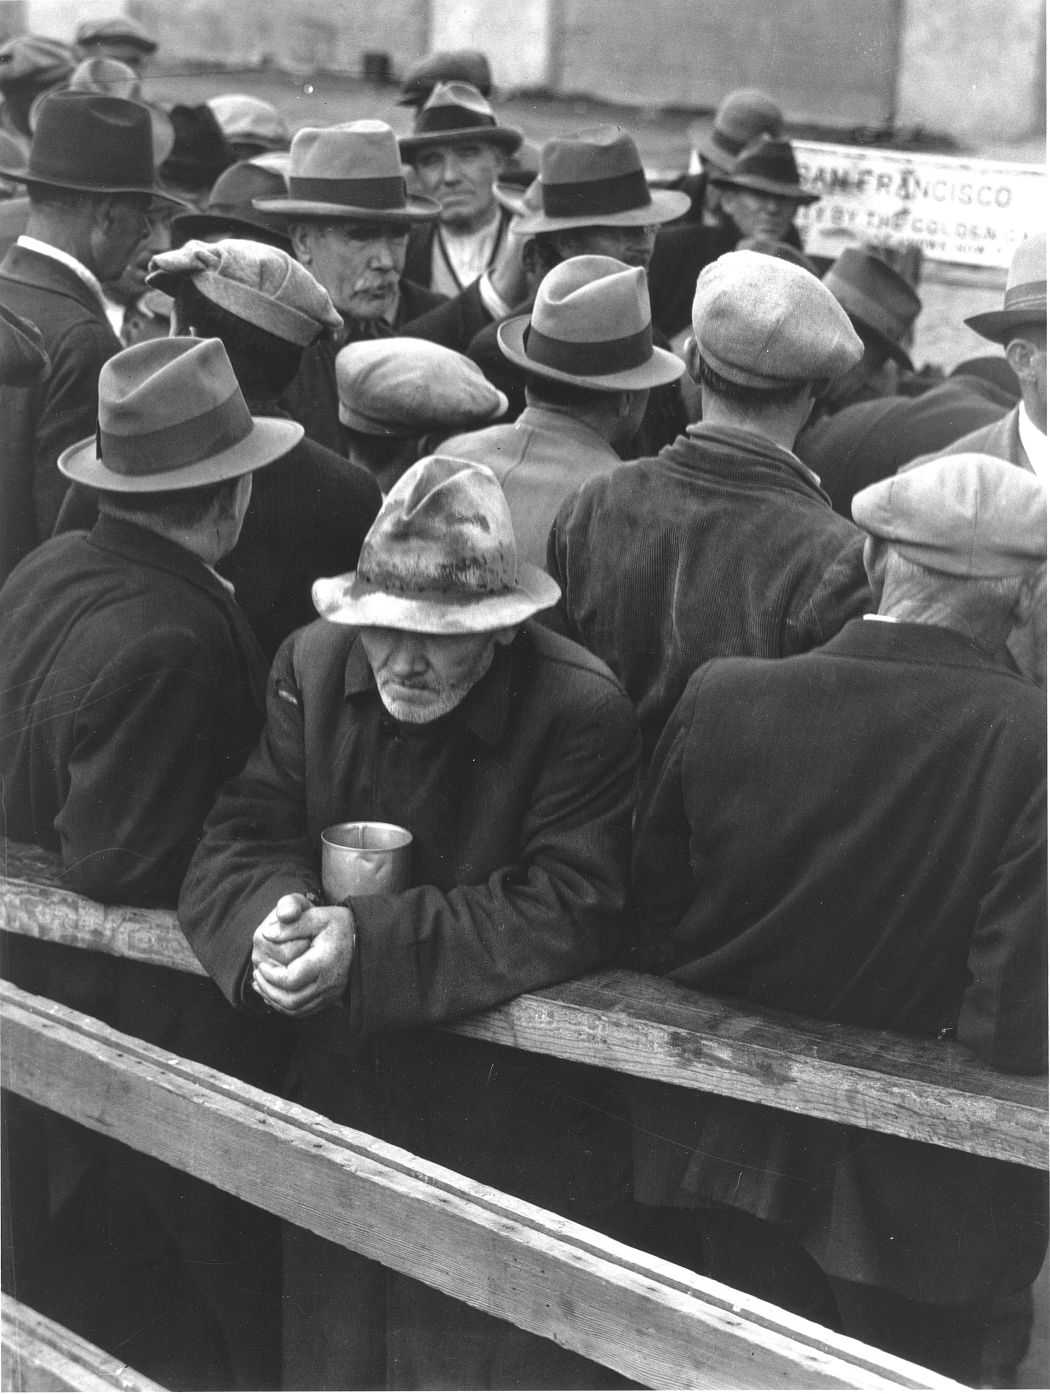 Dorothea Lange. White Angel Breadline, San Francisco, 1933. Gelatin silver print. © The Dorothea Lange Collection, the Oakland Museum of California, gift of Paul S. Taylor